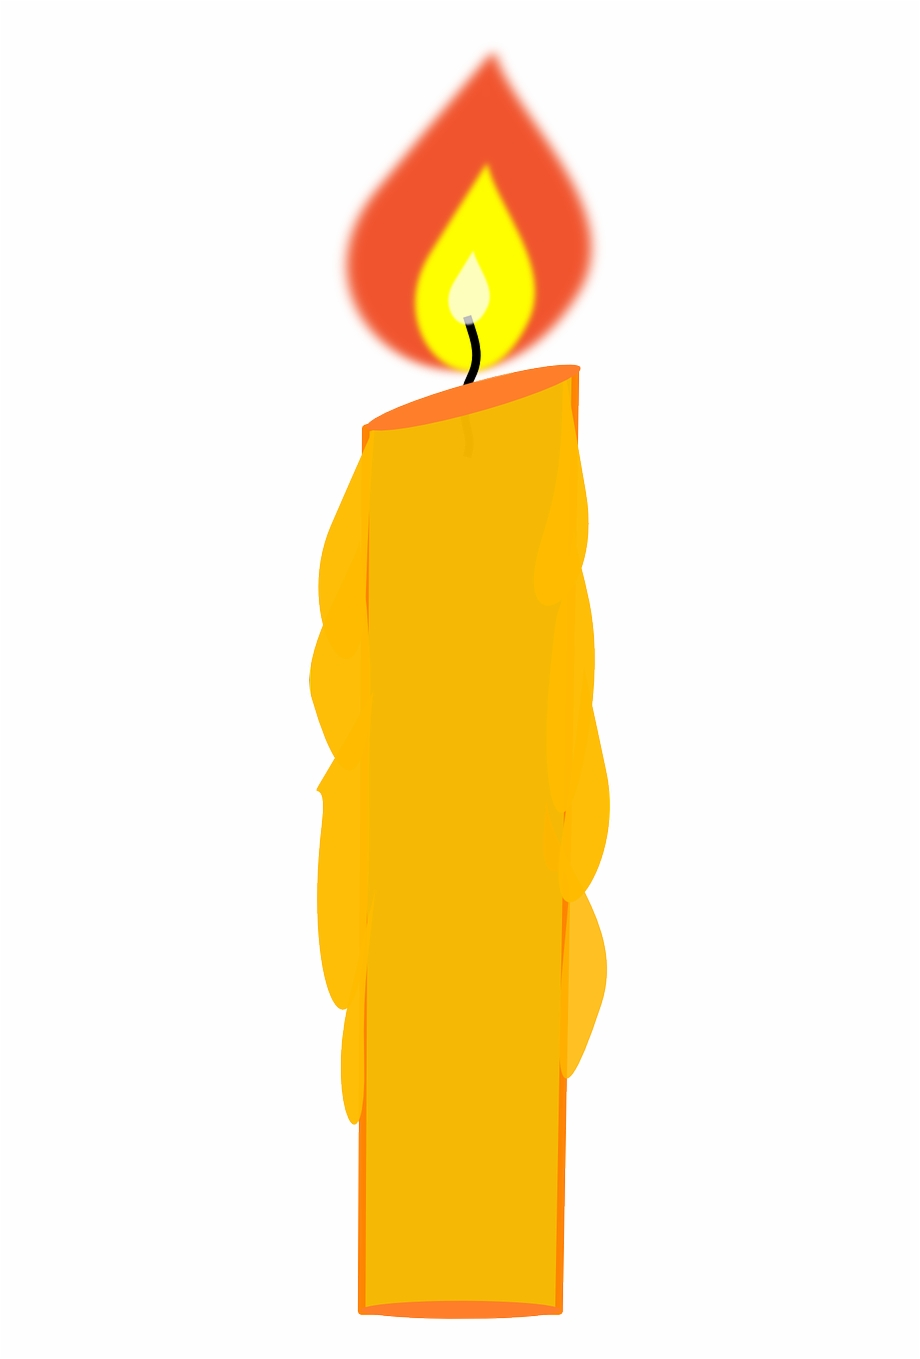 Candles clipart single. Candle flame fire heat